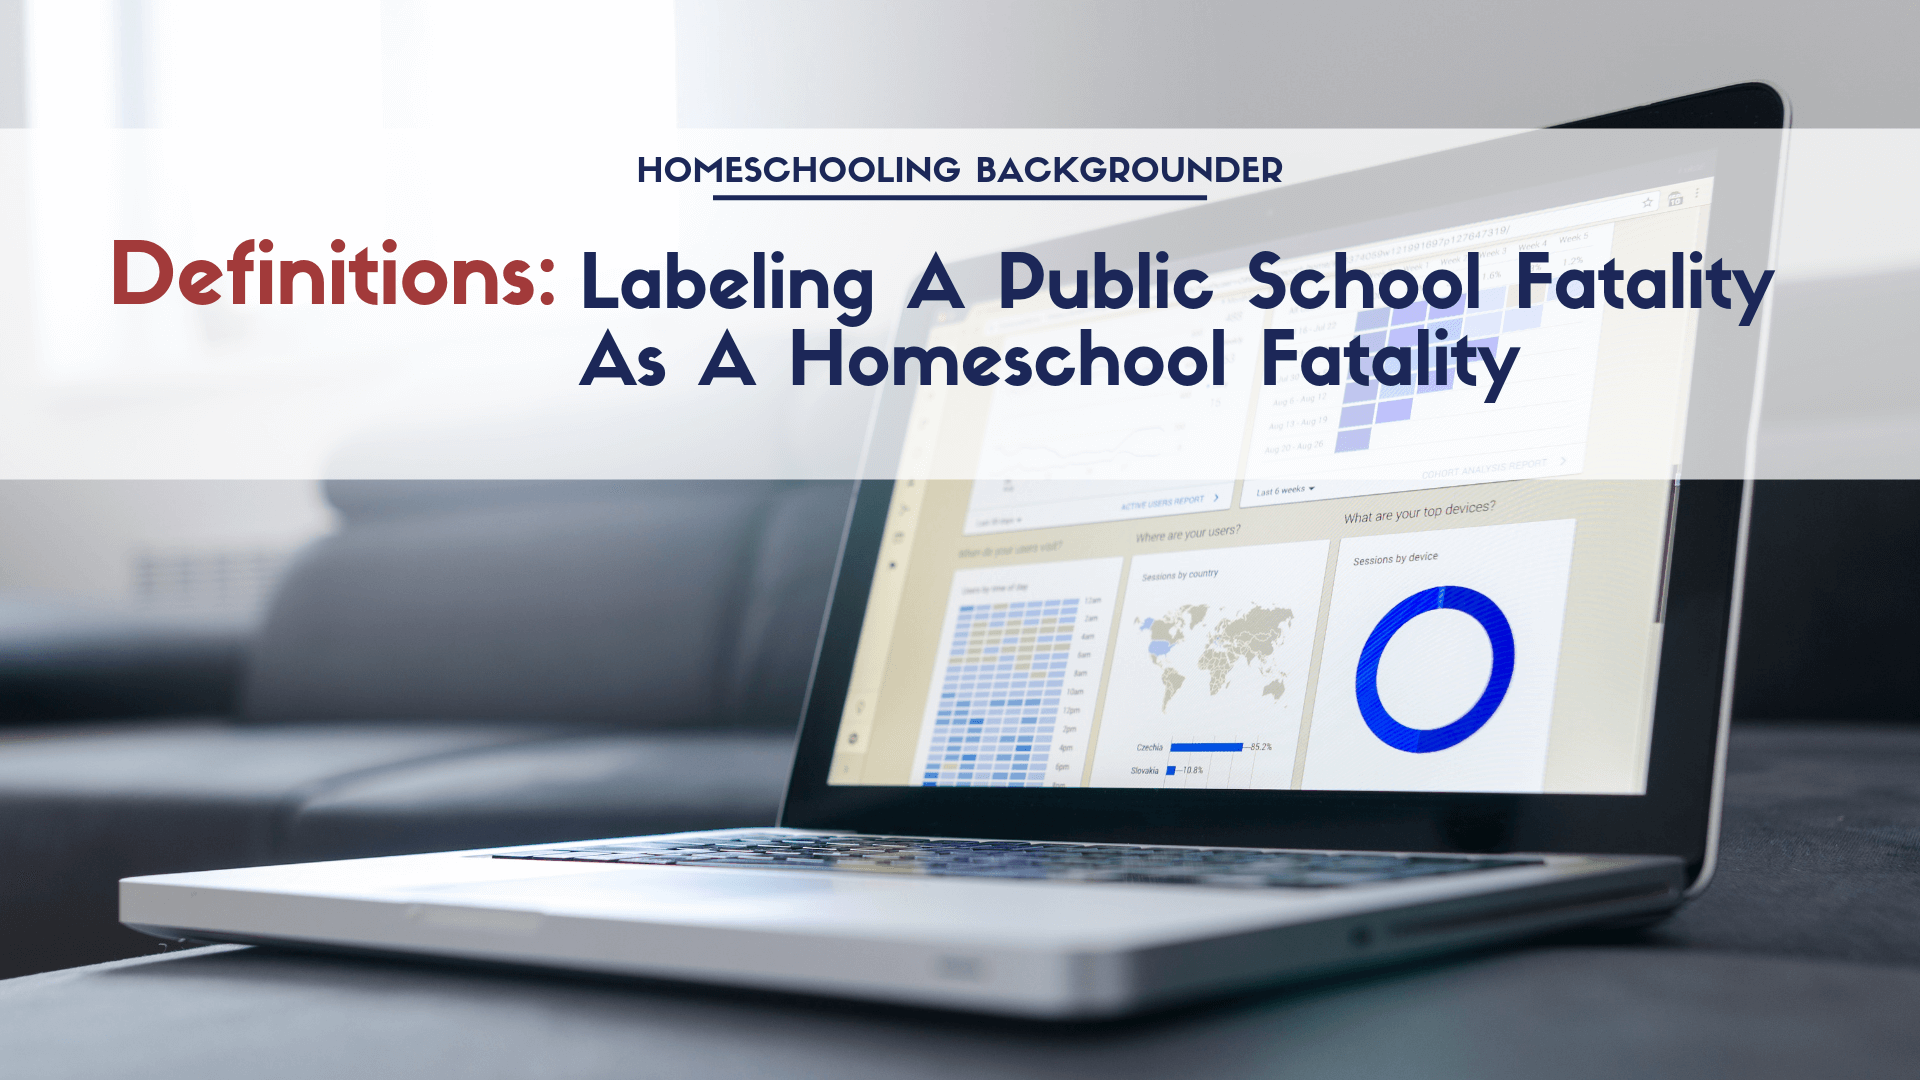 labelling PS fatality as Homeschool fatality